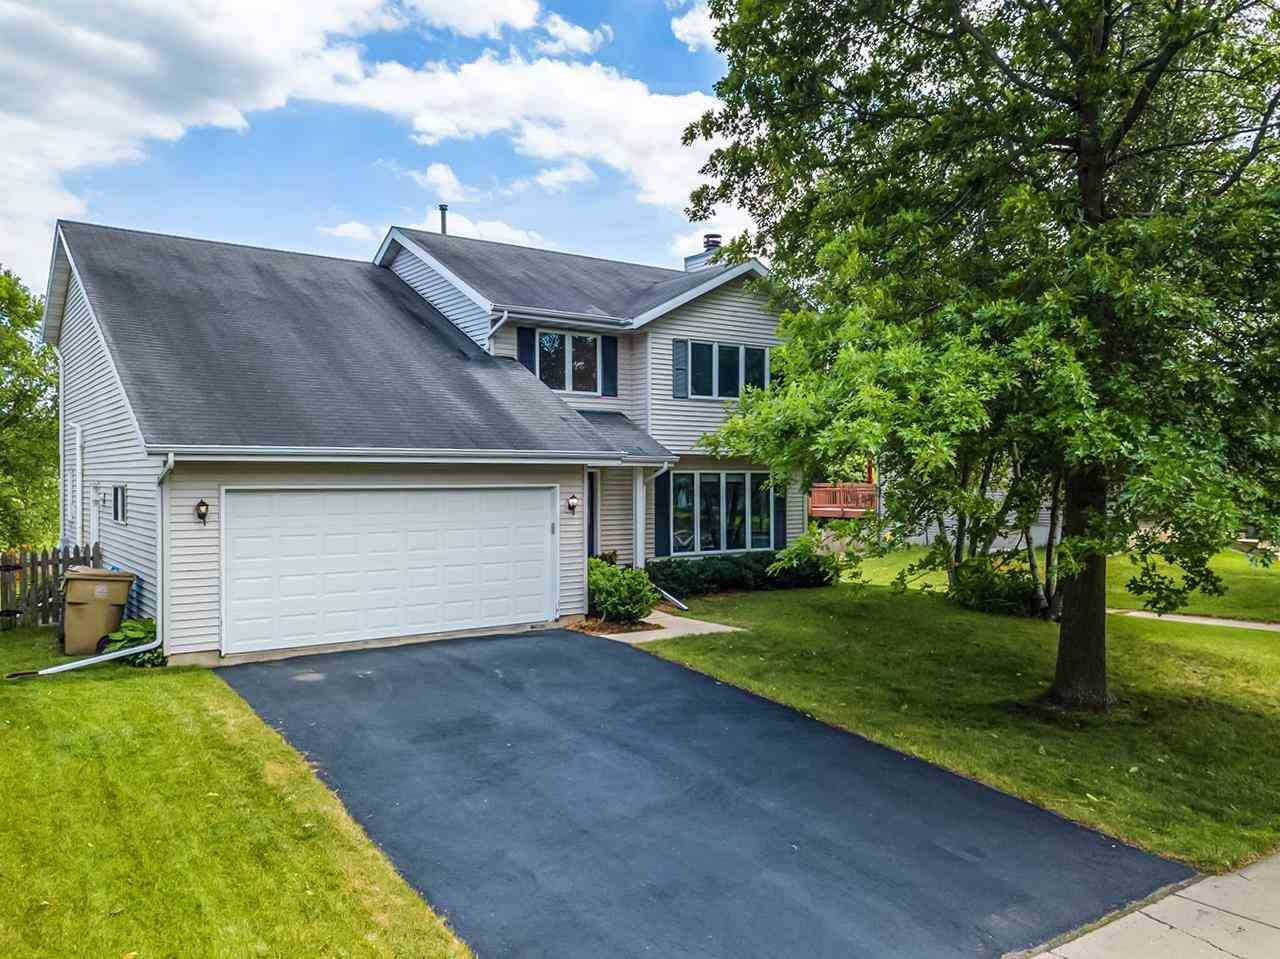 6321 Dylyn Dr, Madison, WI 53719 - #: 1912700